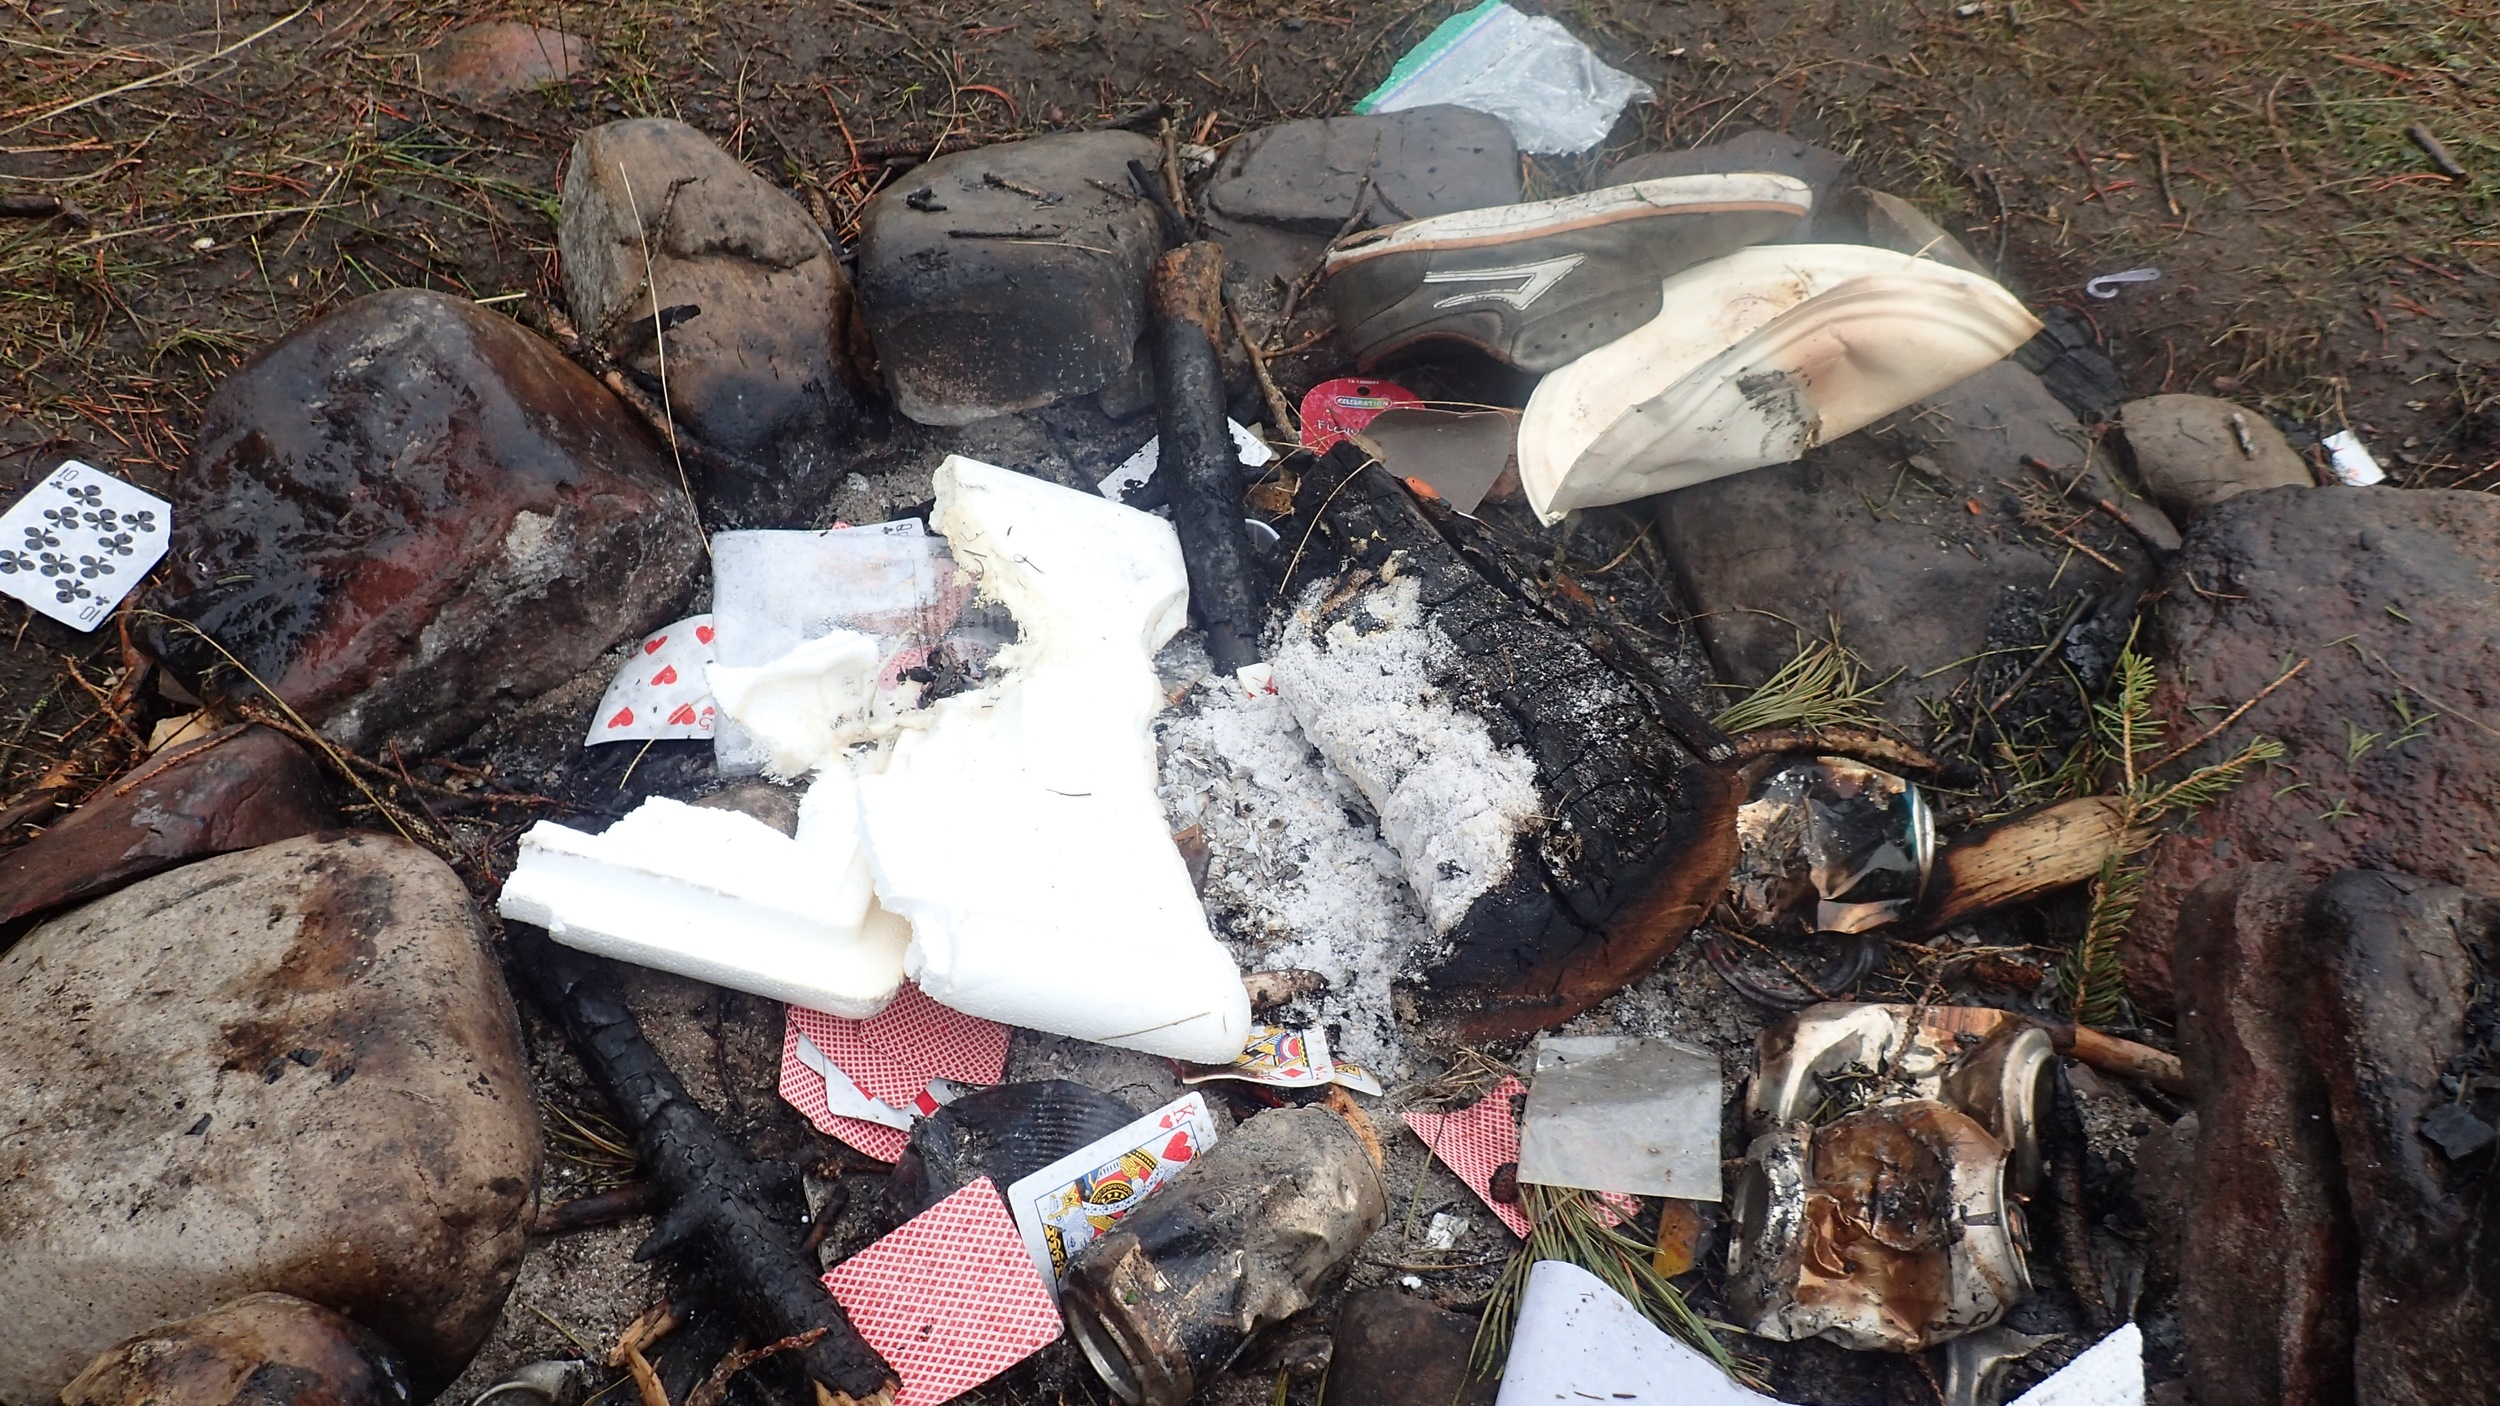 Respect the environment and fellow campers and don't leave your campsite like this!Pack out what you pack in.